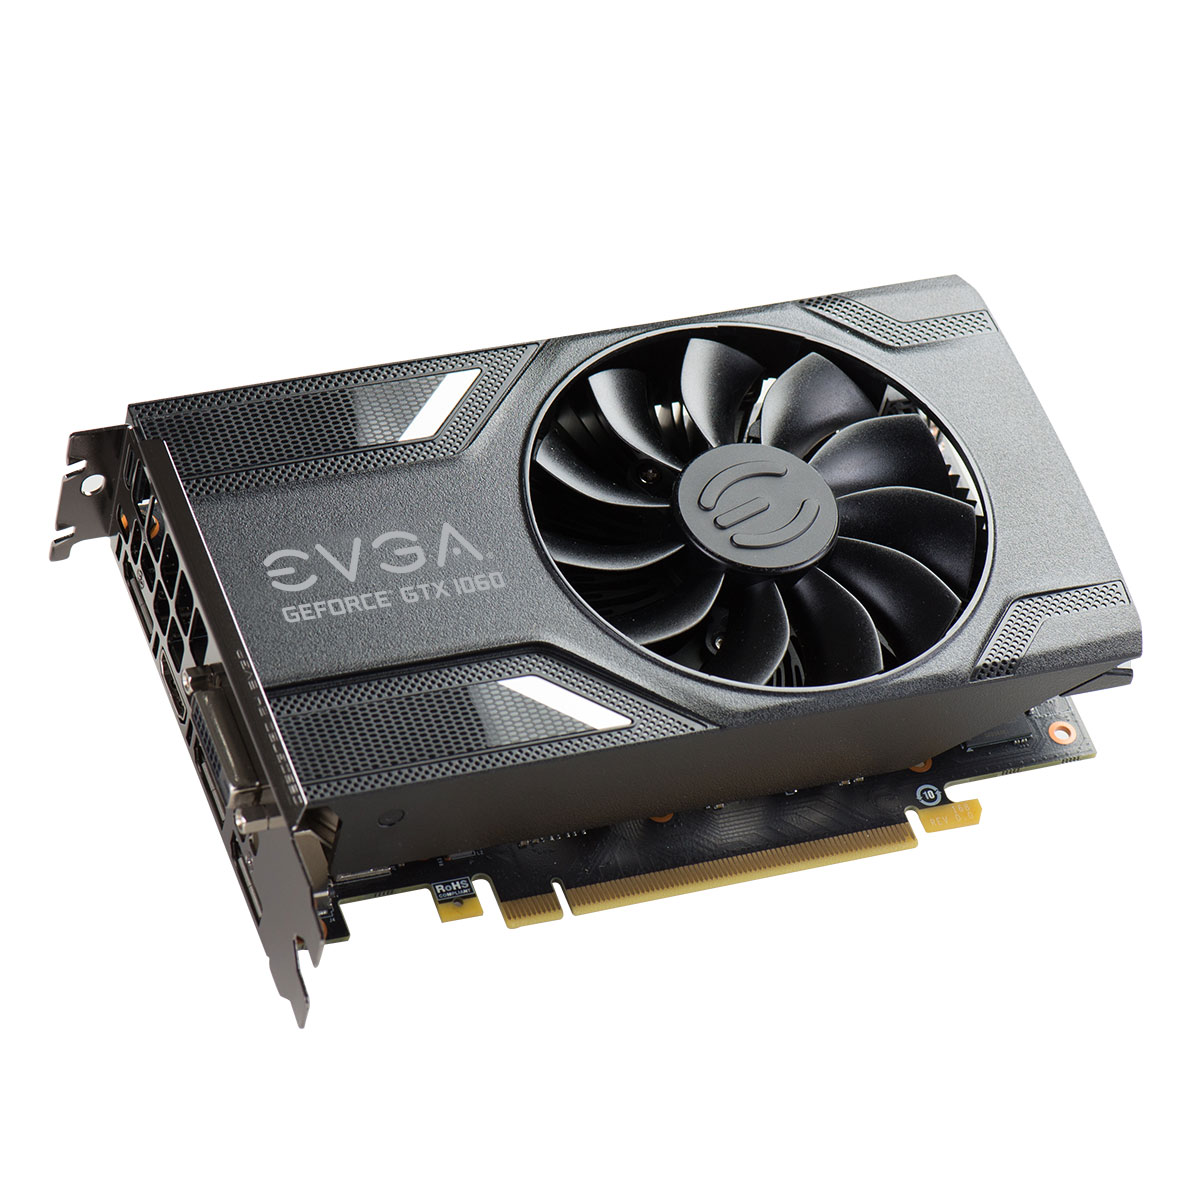 EVGA 03G-P4-6162-KR GeForce GTX 1060 SC GAMING 3GB GDDR5 ACX 2.0 (Single Fan) DX12 OSD Support (PXOC) Video Card